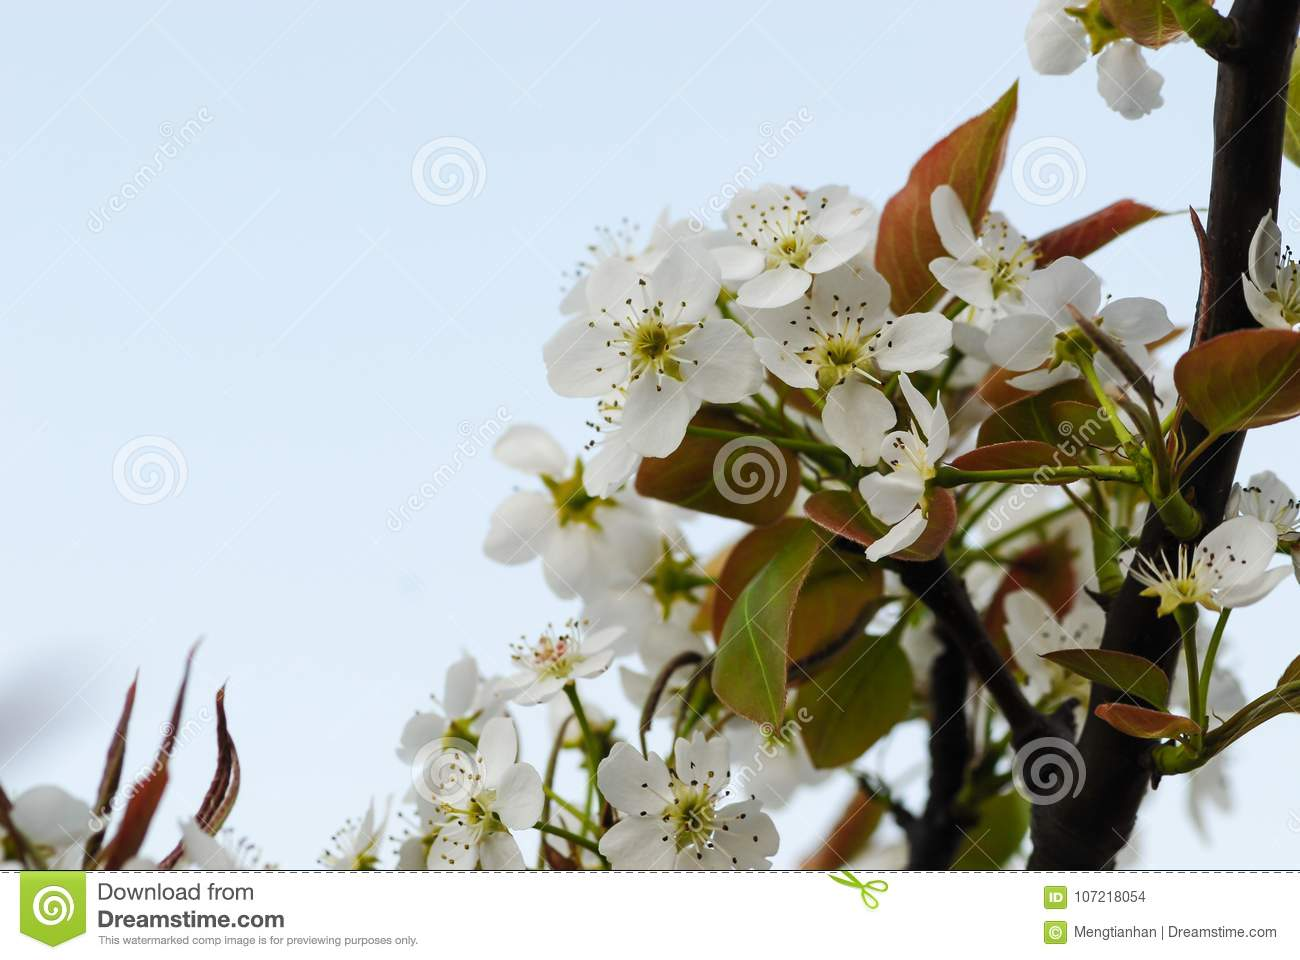 The flowers of the pear tree are white stock photo image of pear trees deciduous trees leaf yuanru psiocarpa stem thick skin care such as the umbrella support branch spring flower flower and color white mightylinksfo